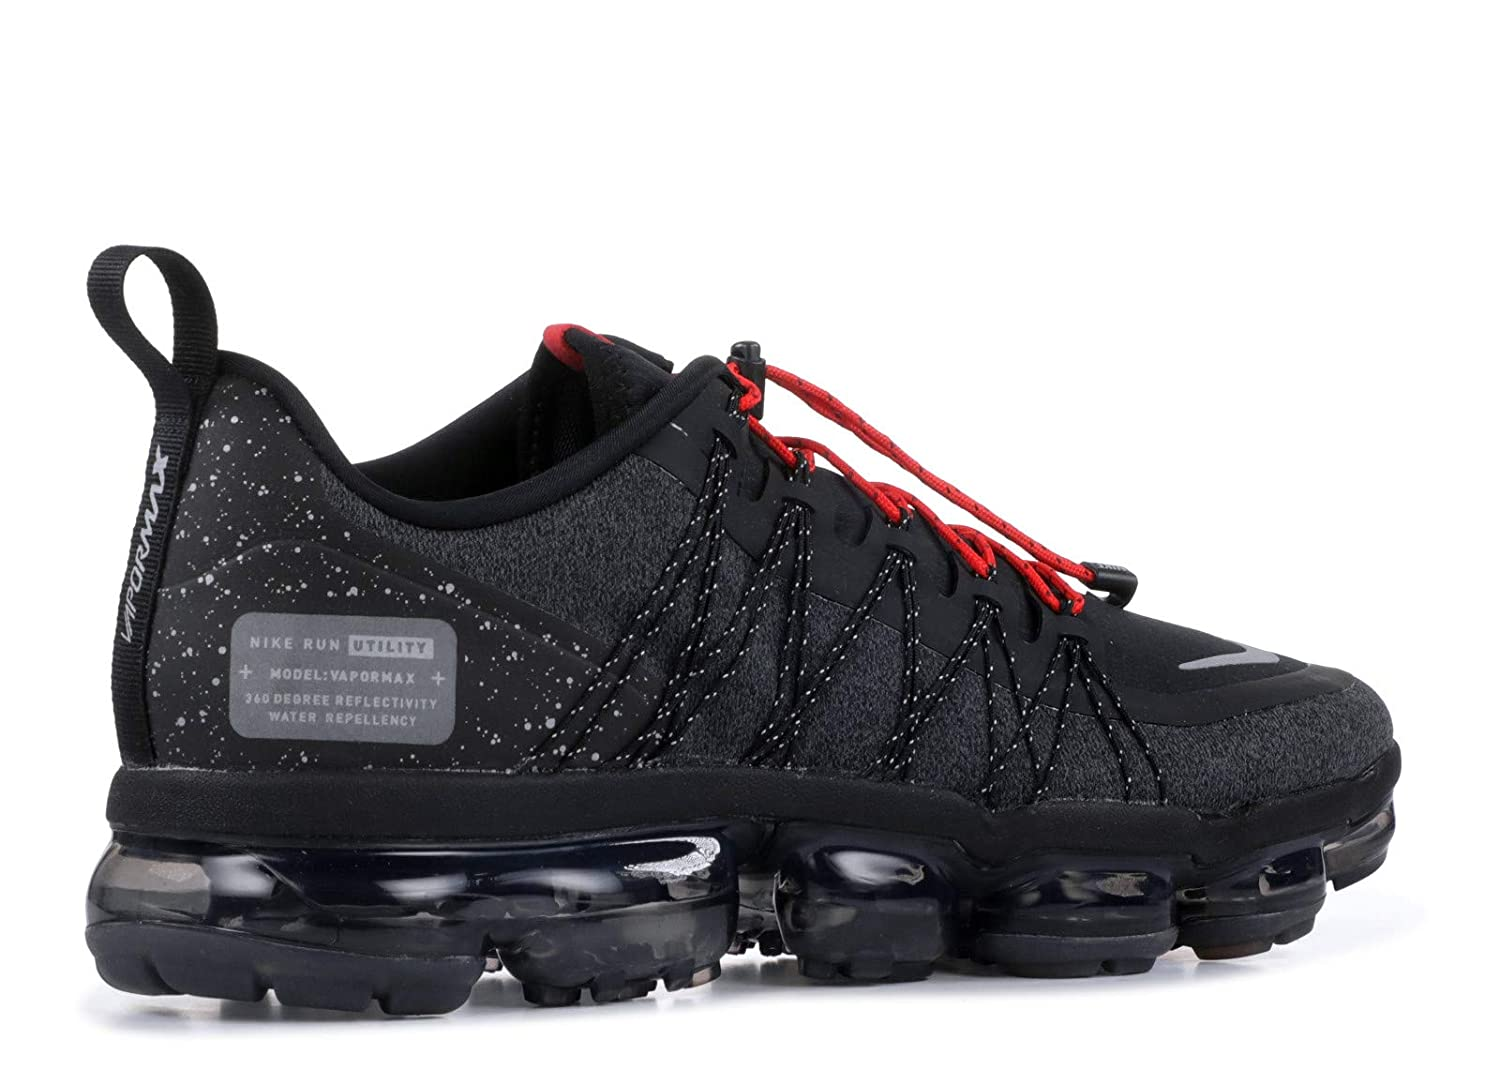 running shoes special section lowest discount Nike Air Vapormax Run Utility - Aq8810-001 - Size 12.5